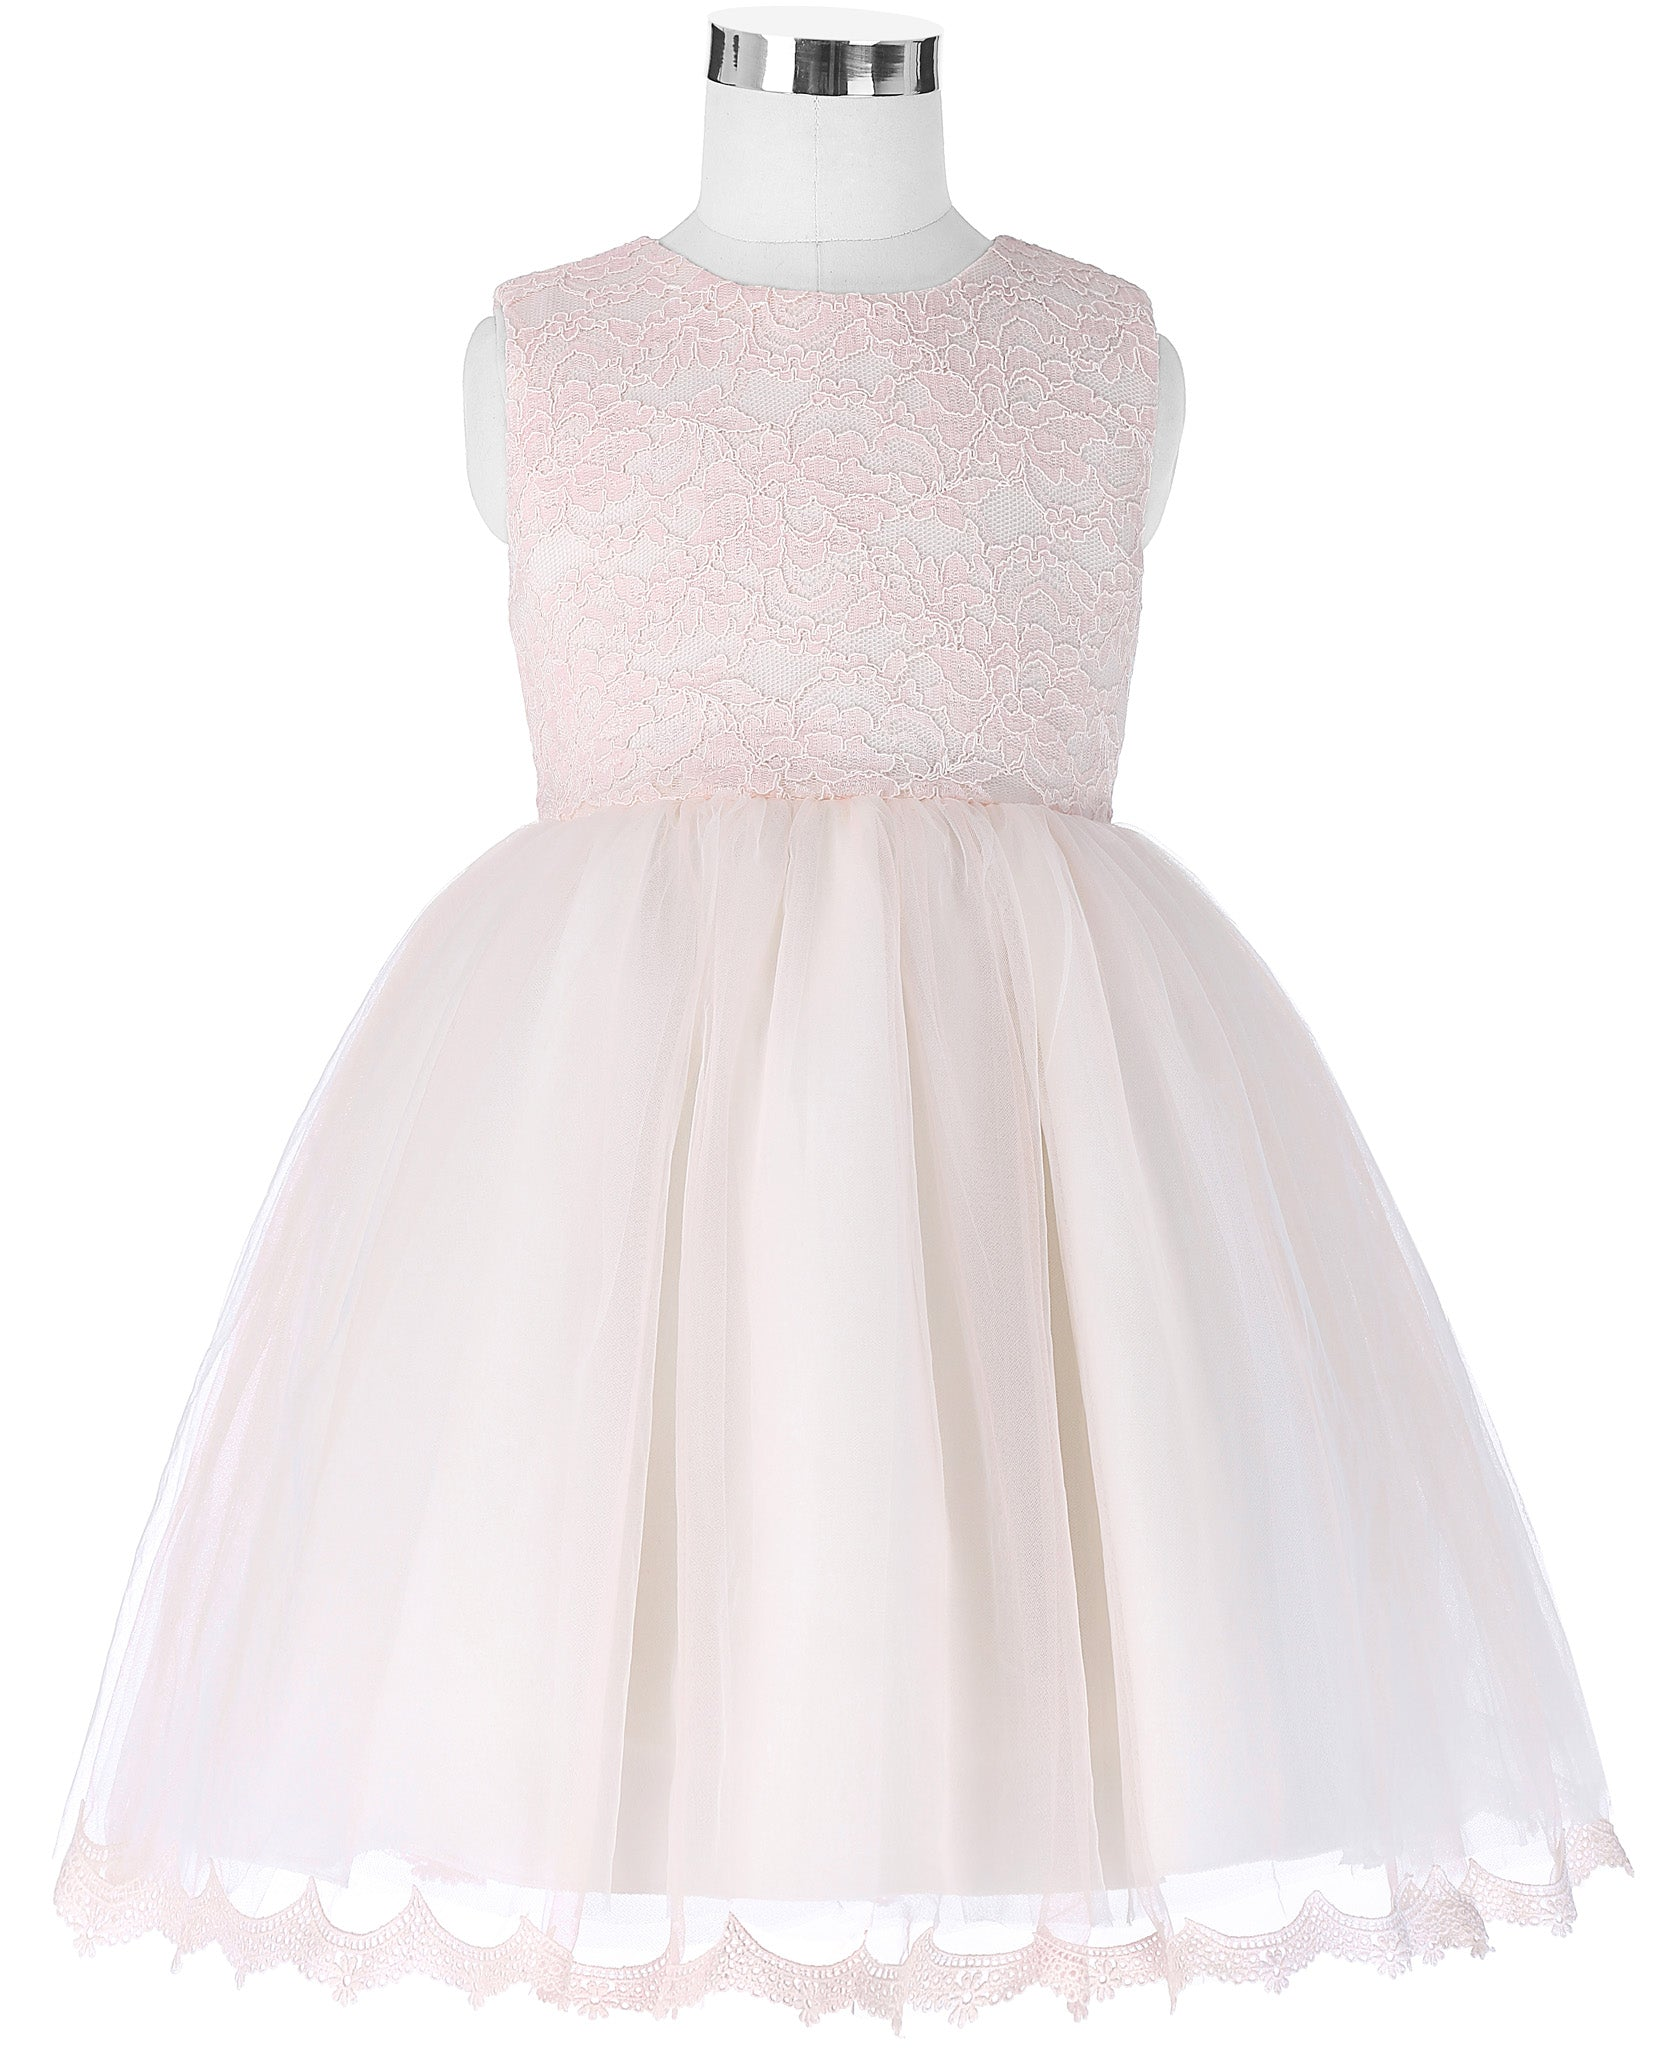 Grace Karin Sleeveless Lacetulle Netting Flower Girl Dress With Bow Knot